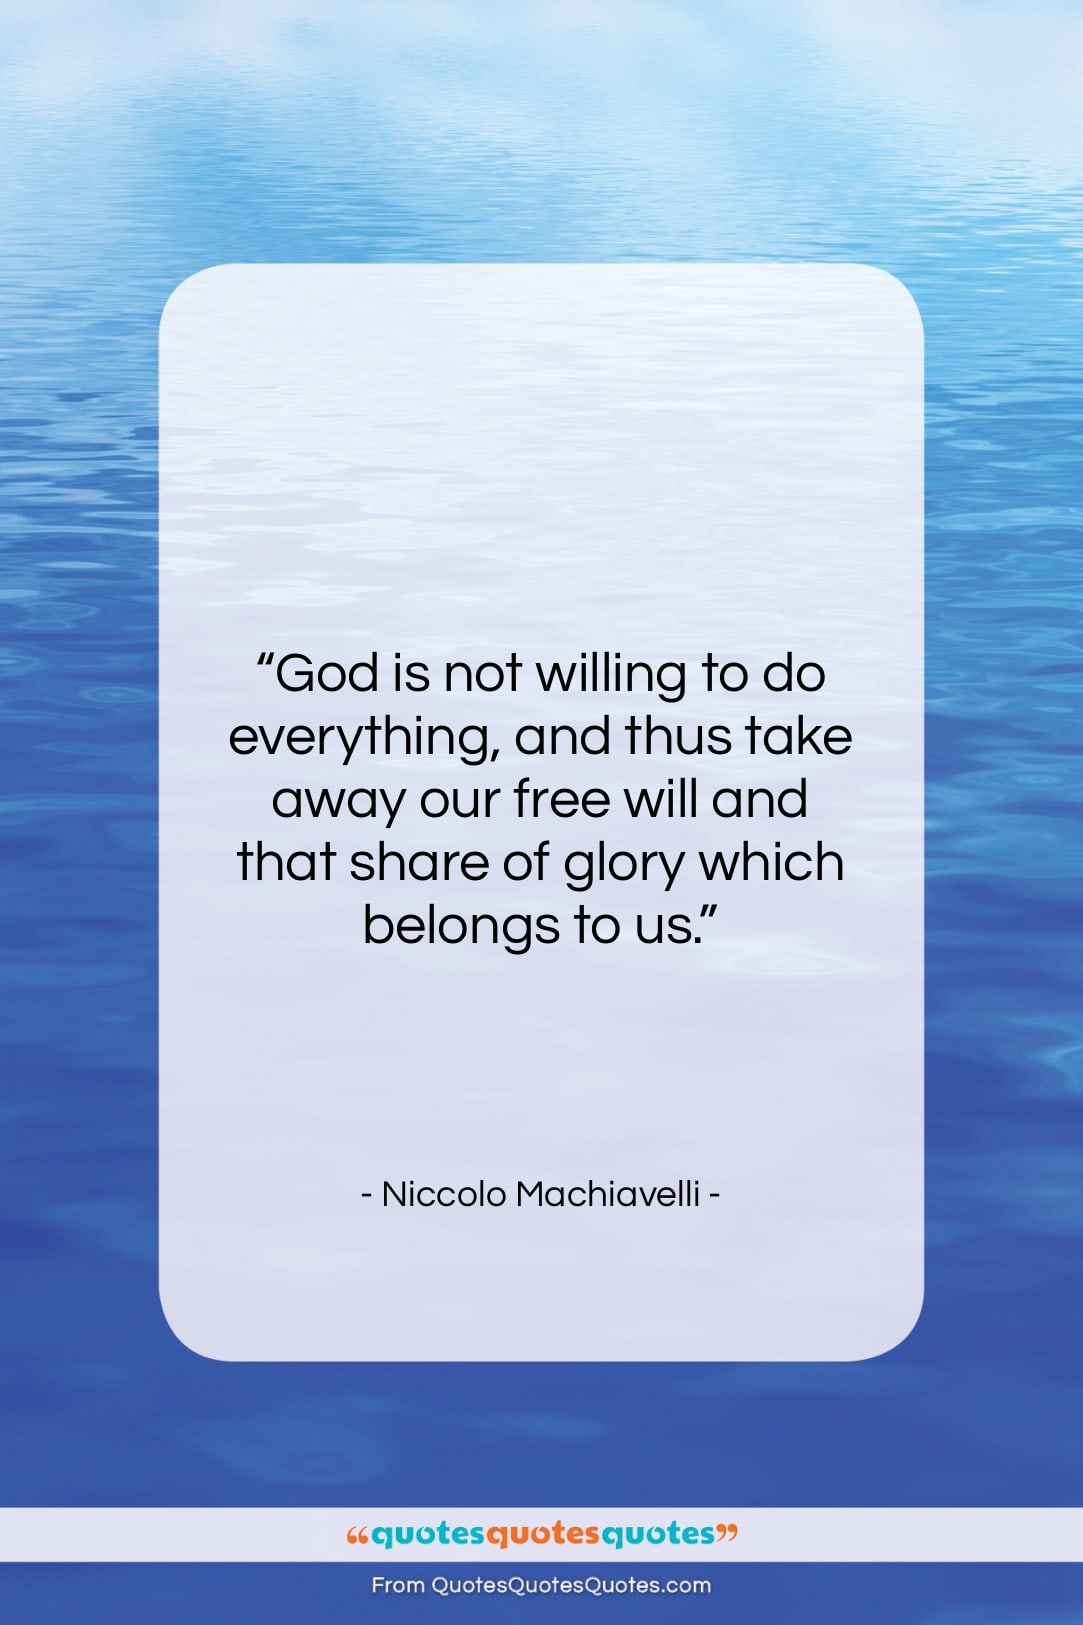 """Niccolo Machiavelli quote: """"God is not willing to do everything,…""""- at QuotesQuotesQuotes.com"""